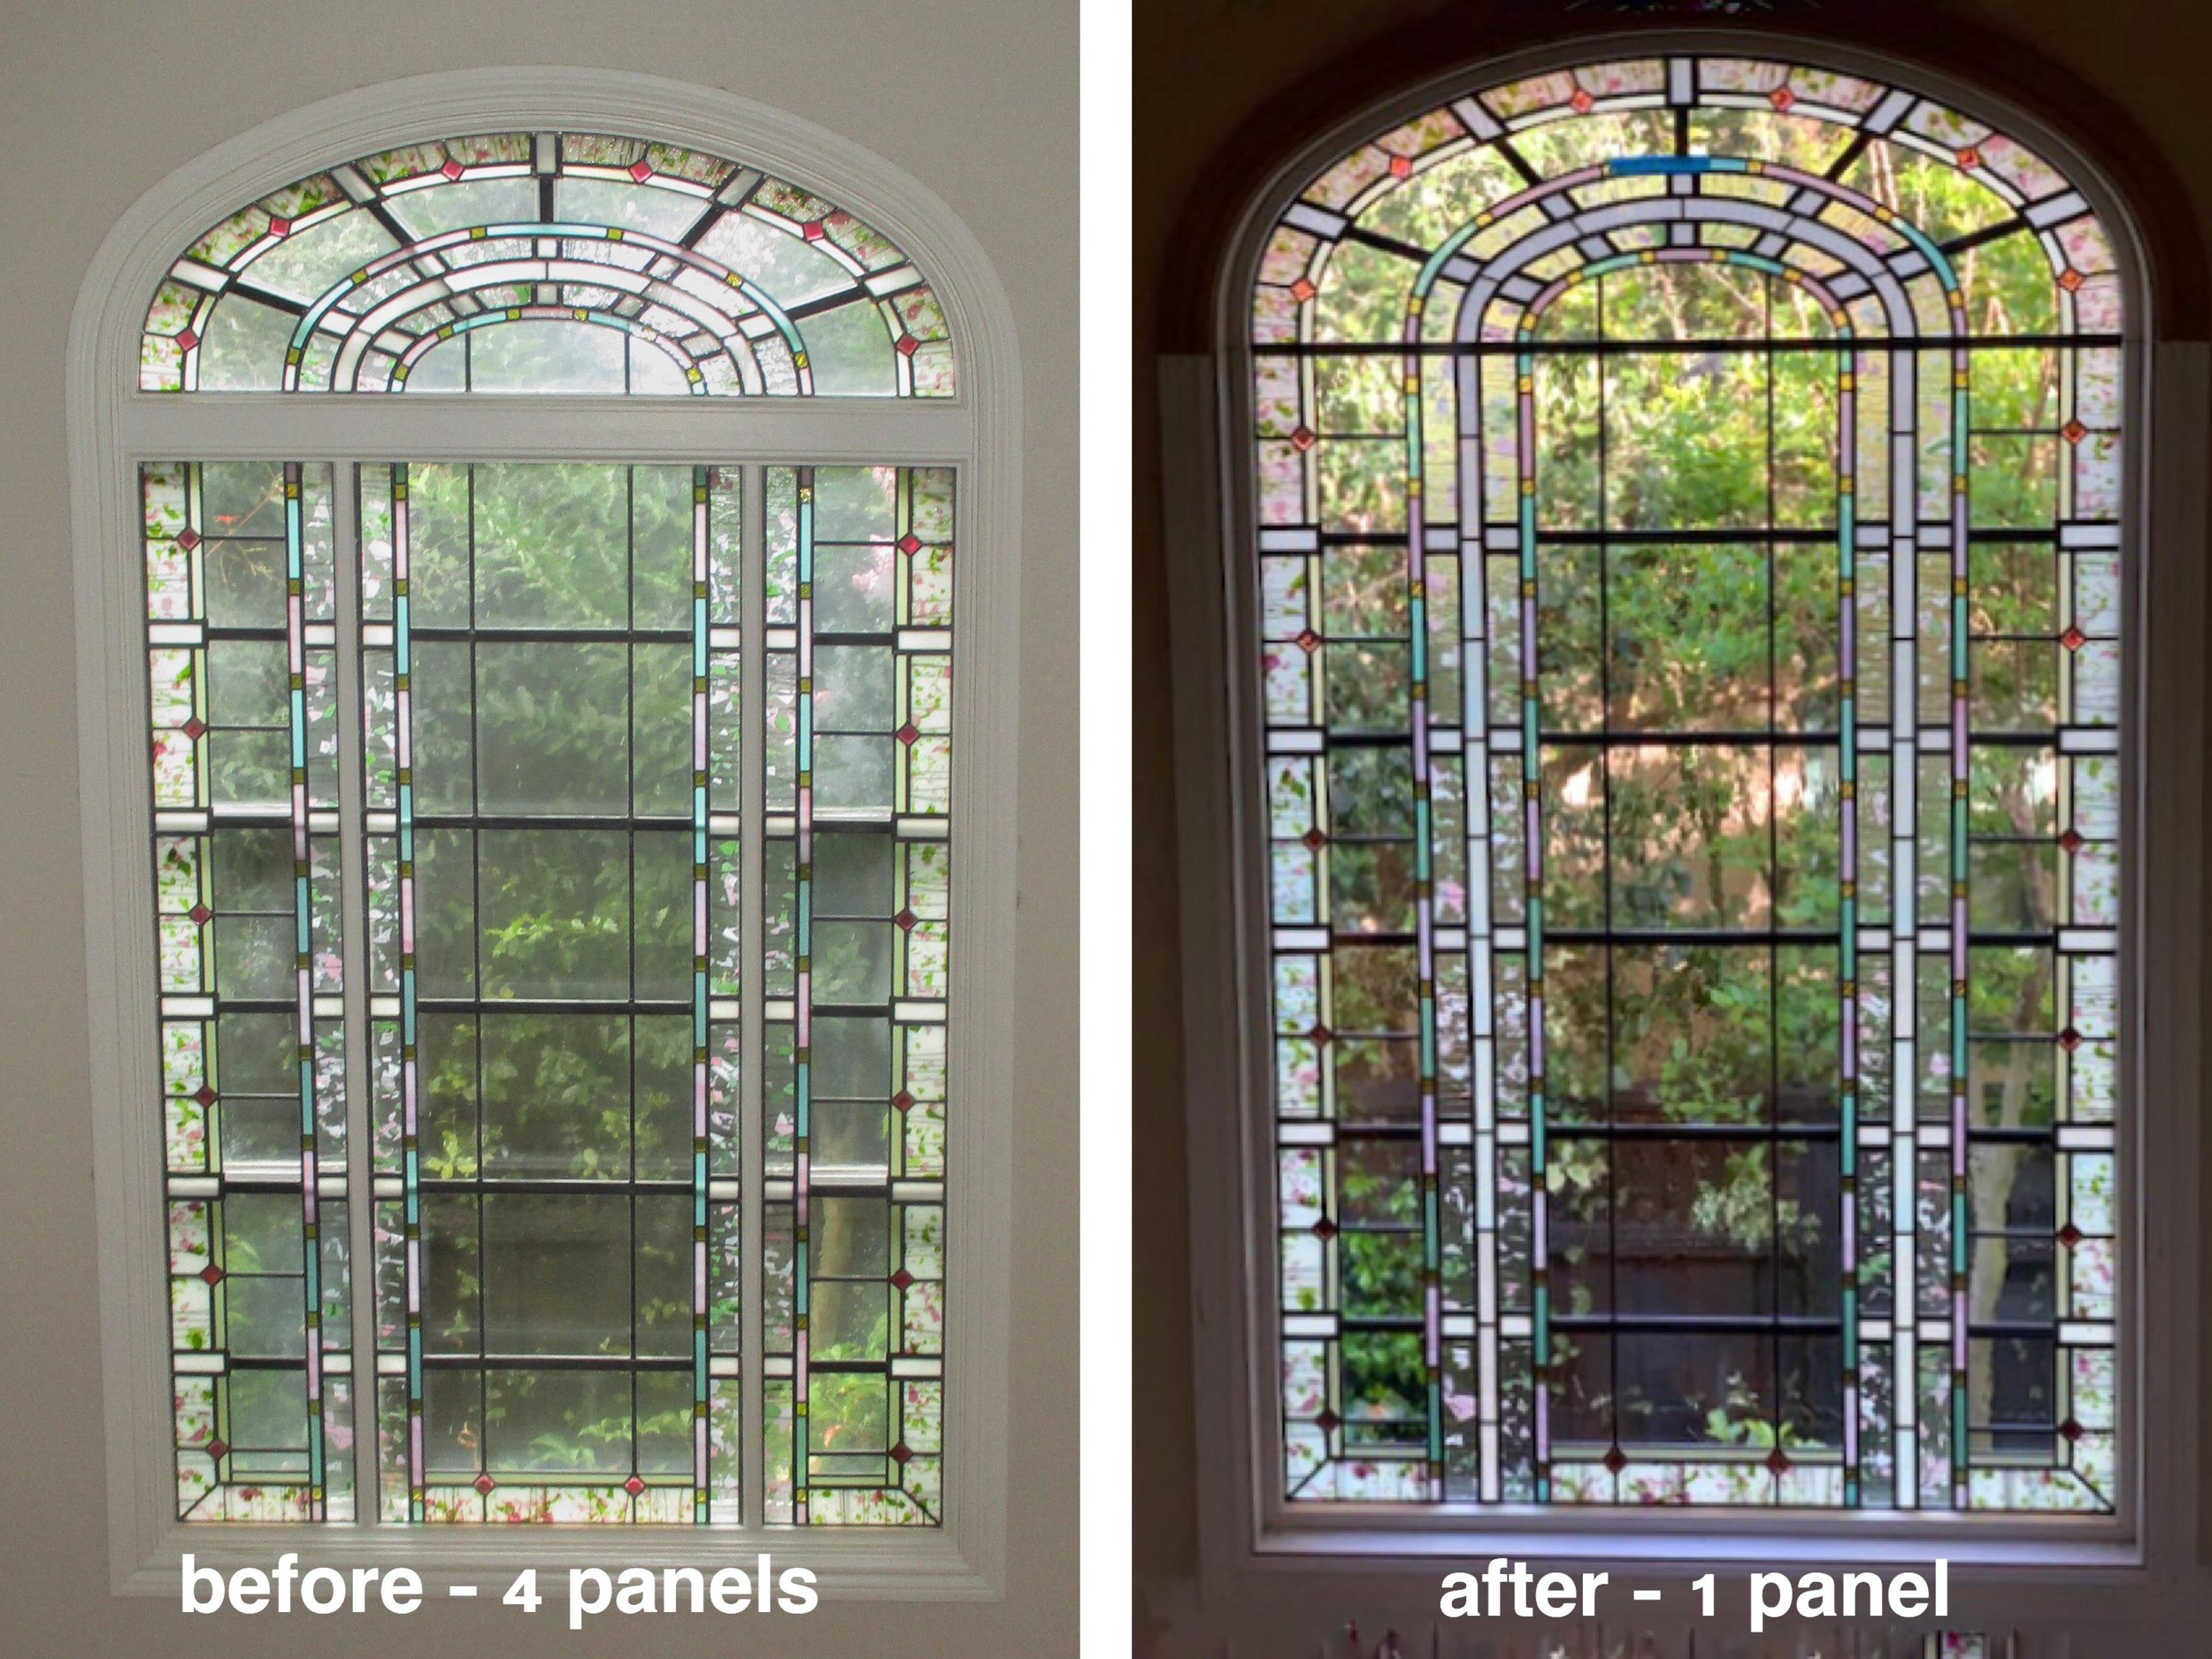 leaded glass stained glass art glass bay area custom design legacy glass studios repurpose triple insulated jewels big arch border.JPG